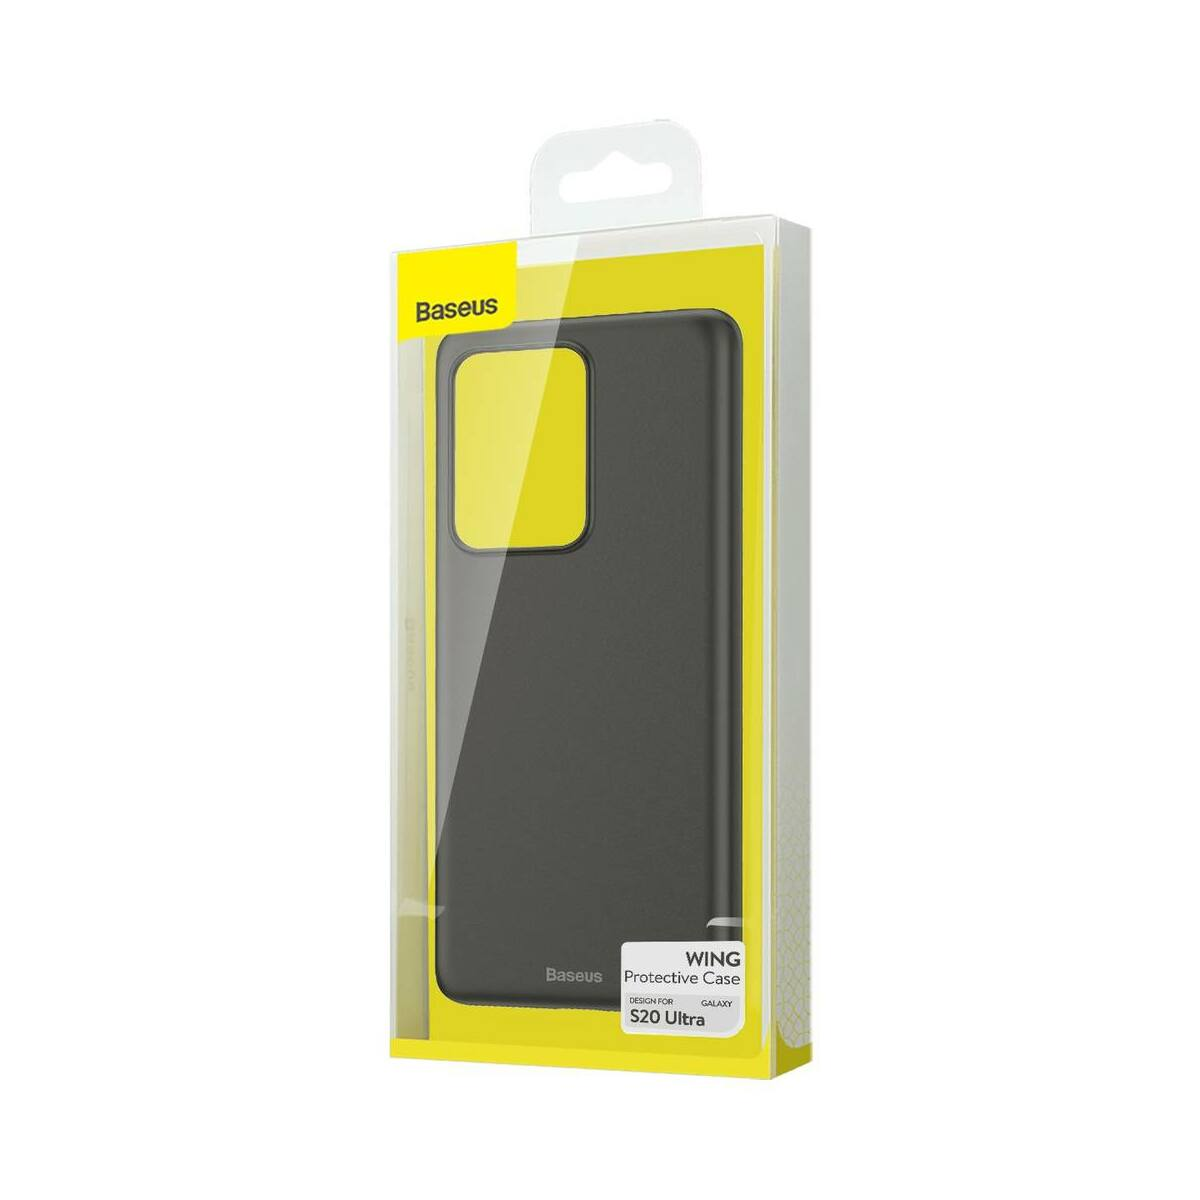 Baseus Samsung S20 tok, Wing, Solid, fekete (WISAS20-A01)